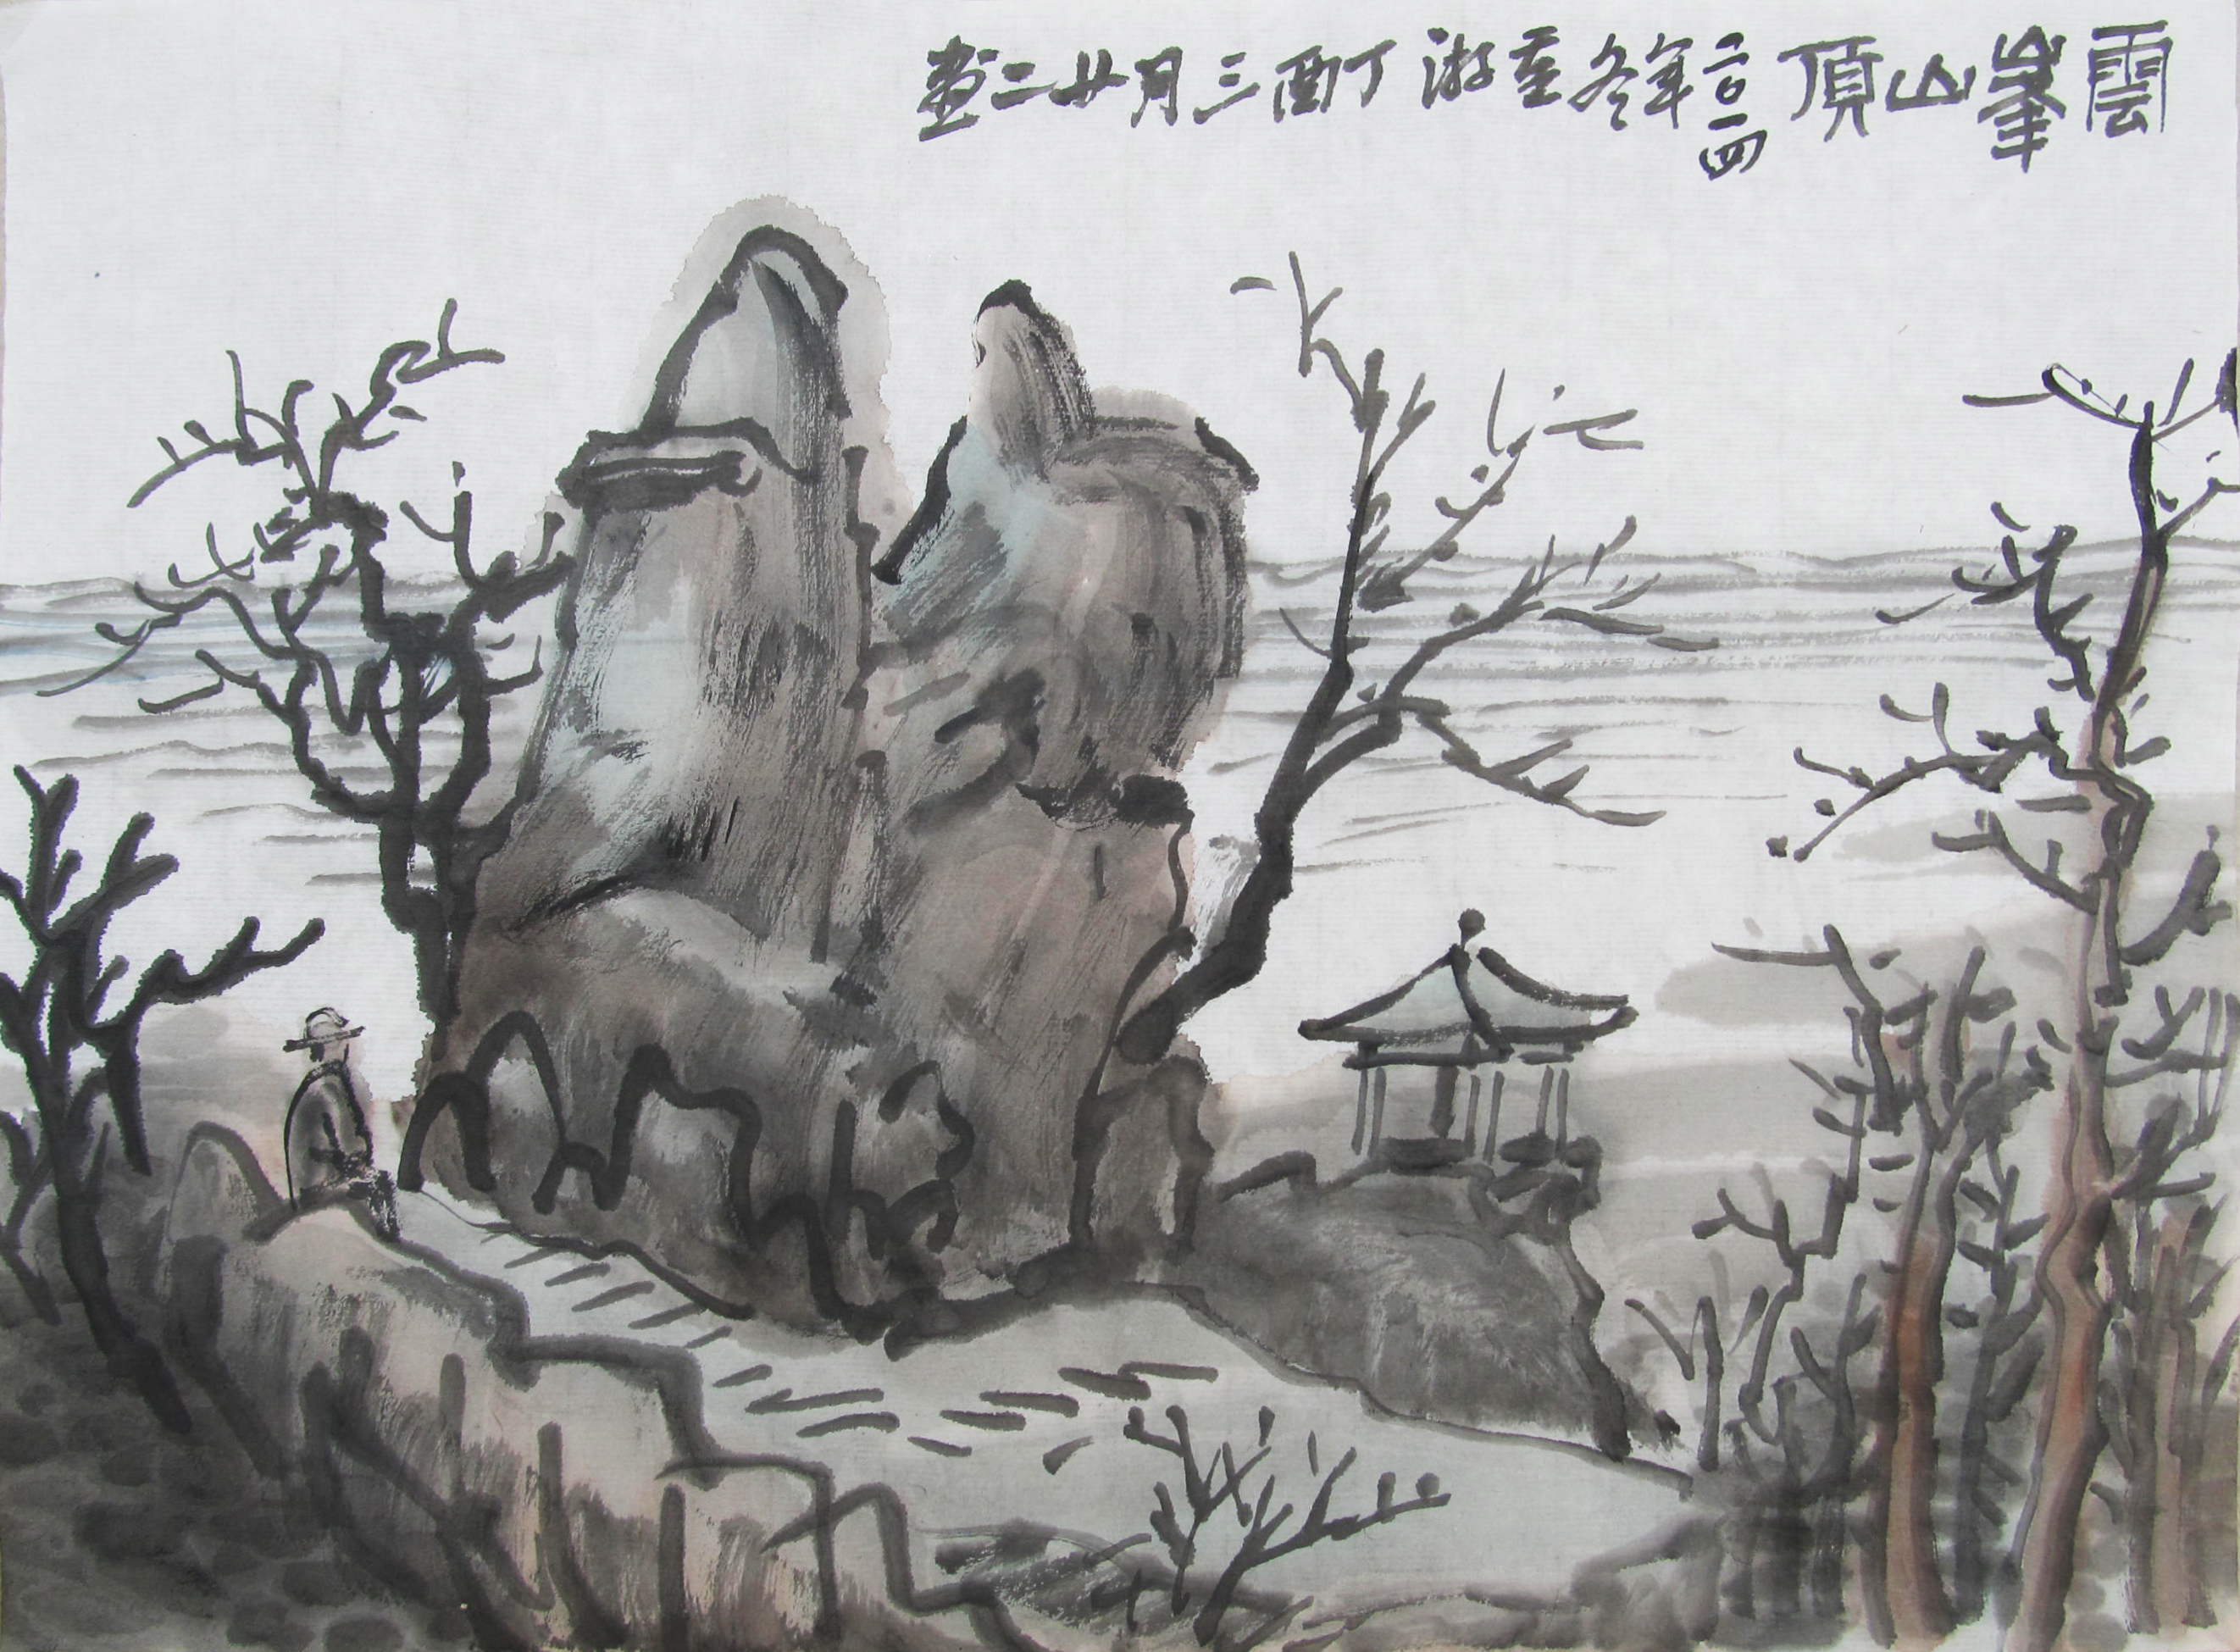 云峰山顶   The Peak of Yunfeng